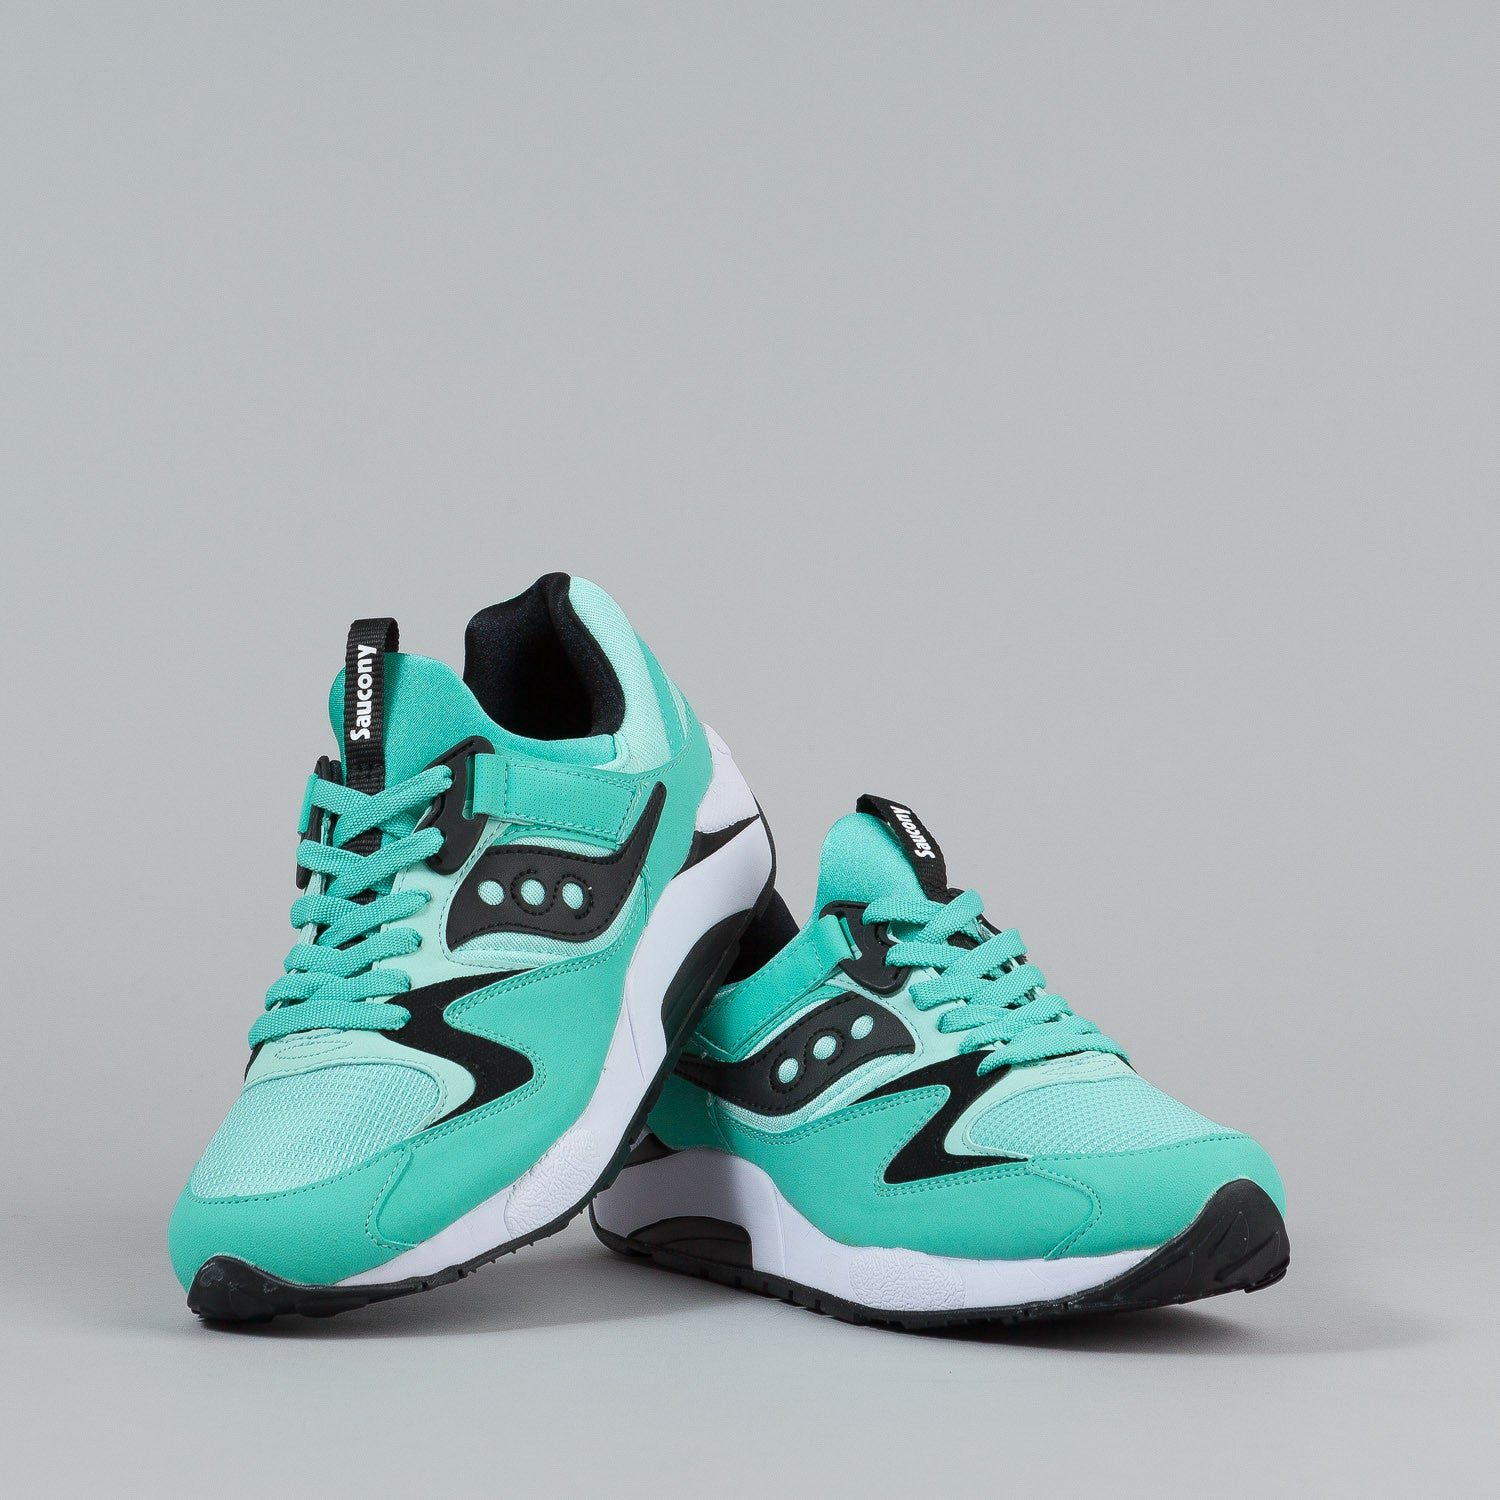 Saucony Grid 9000 Shoes - Mint / Black